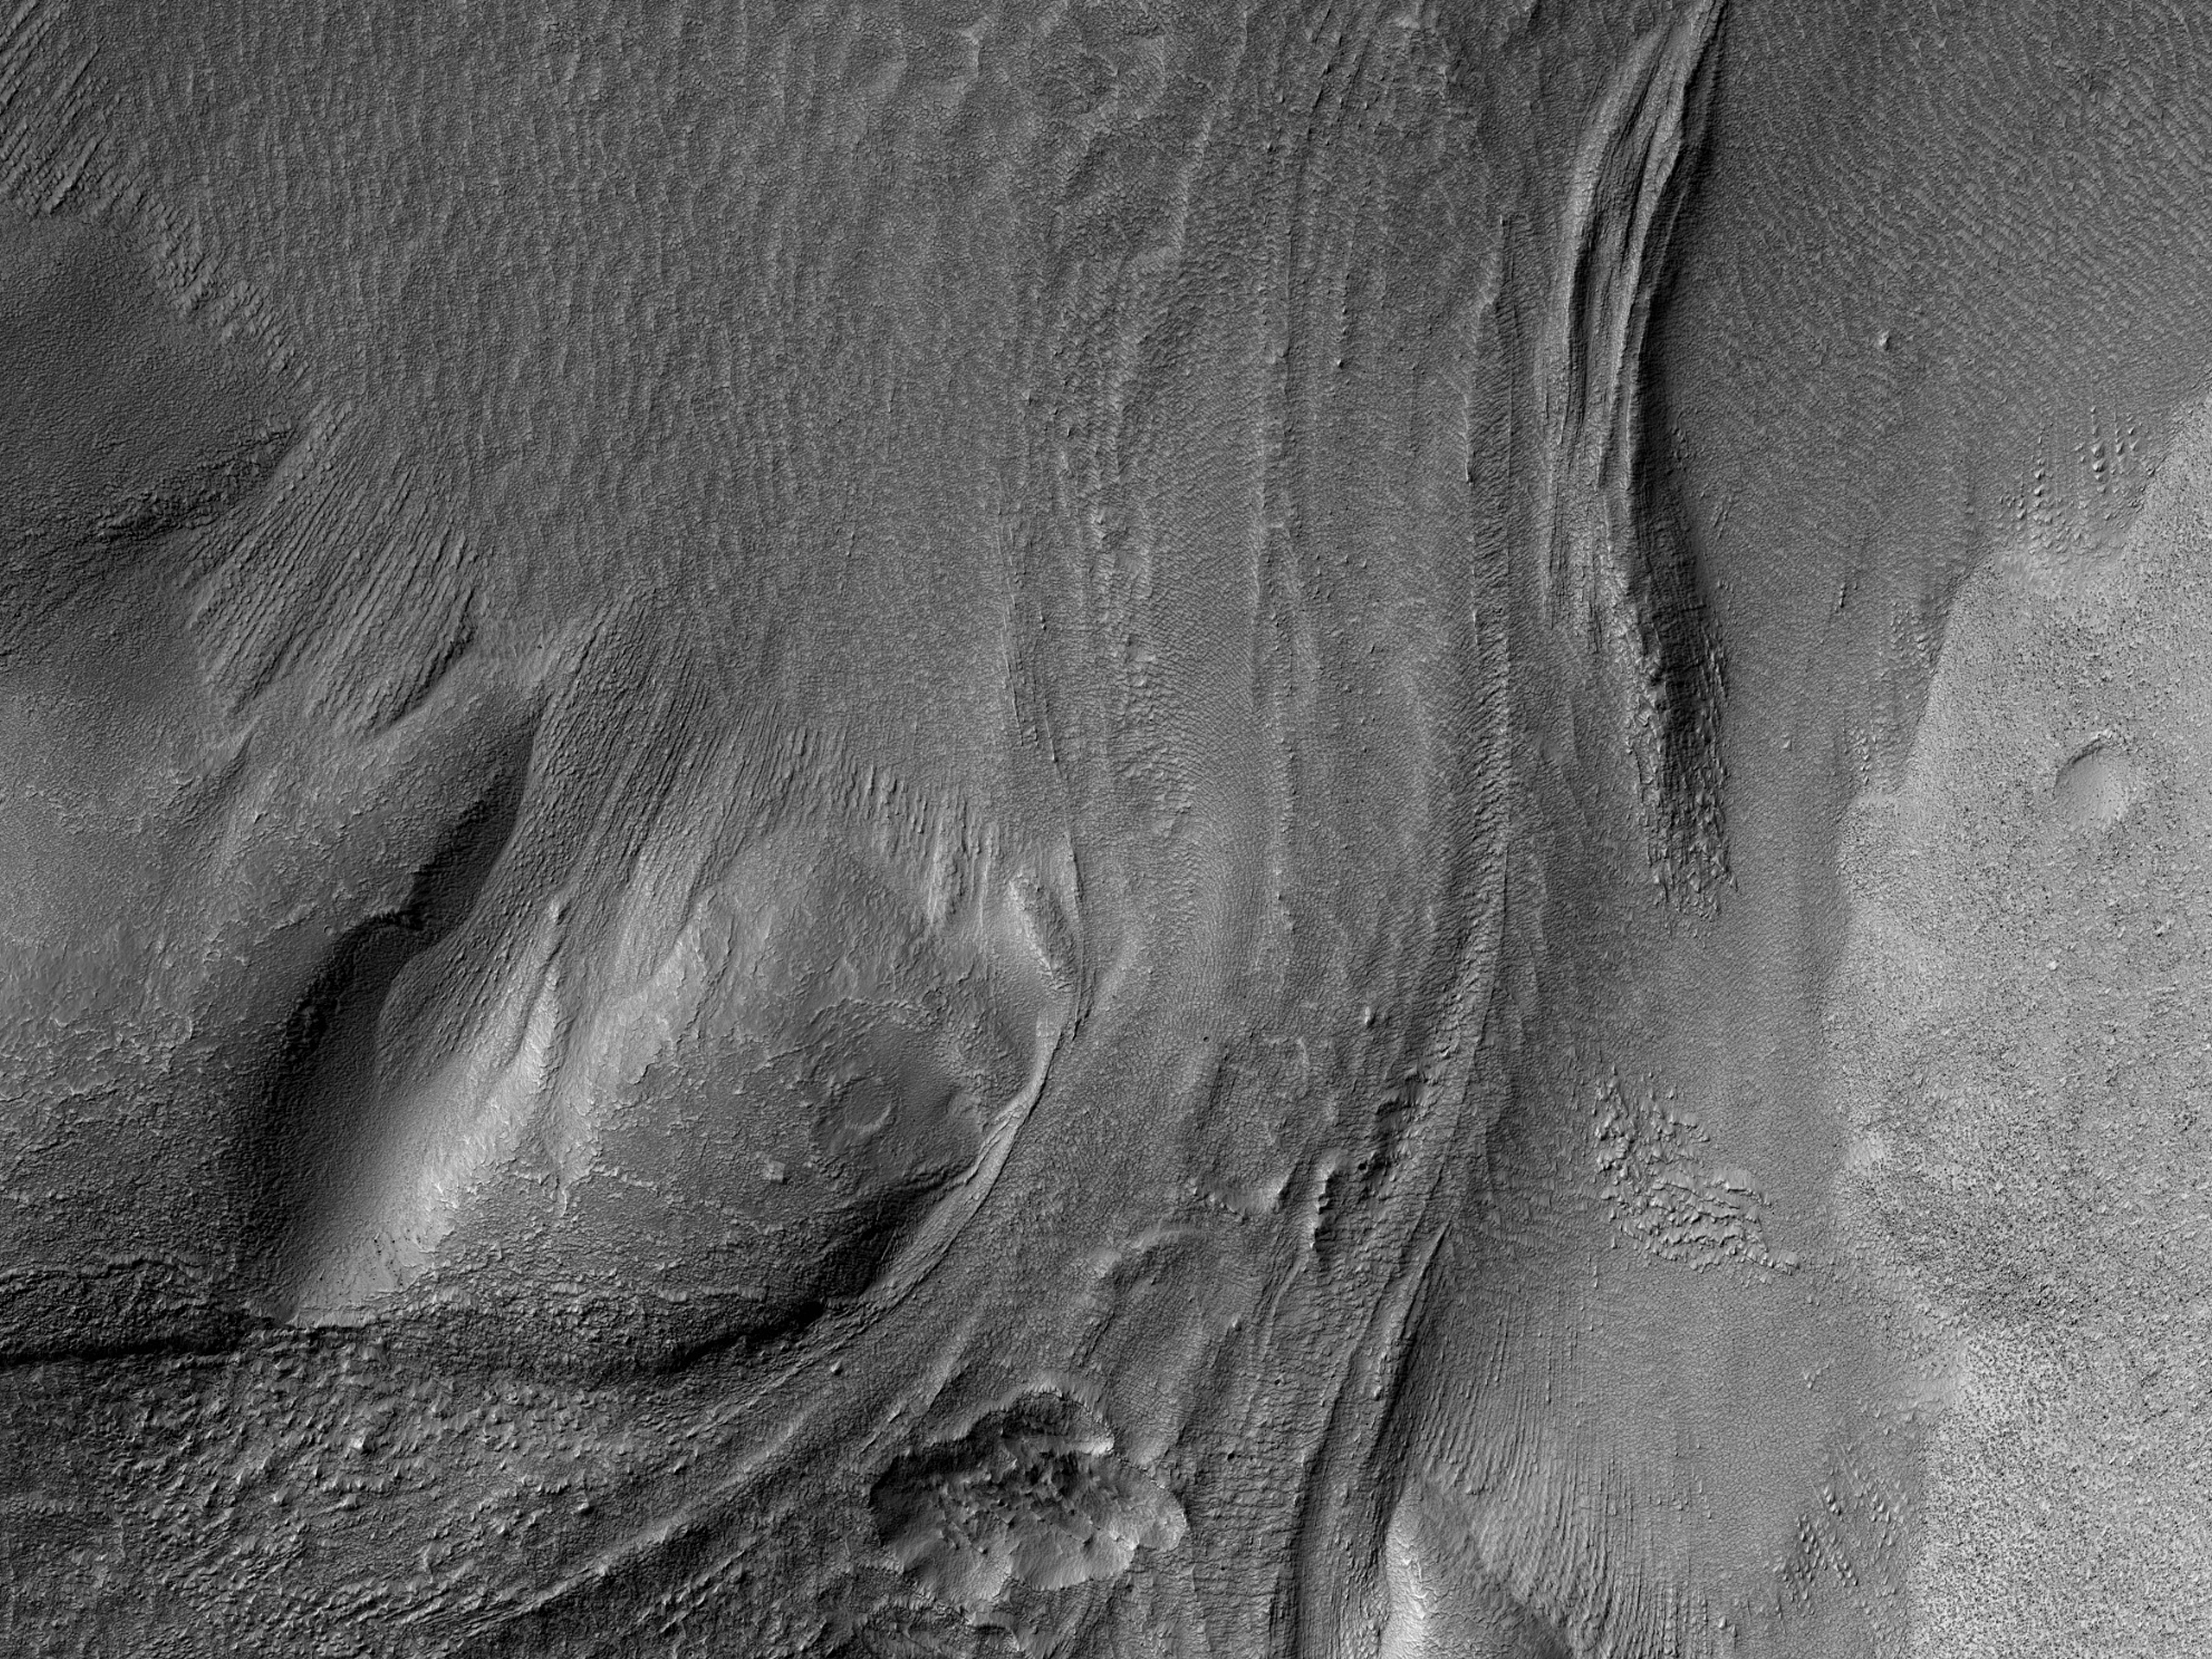 Flow to the East of Hellas Planitia